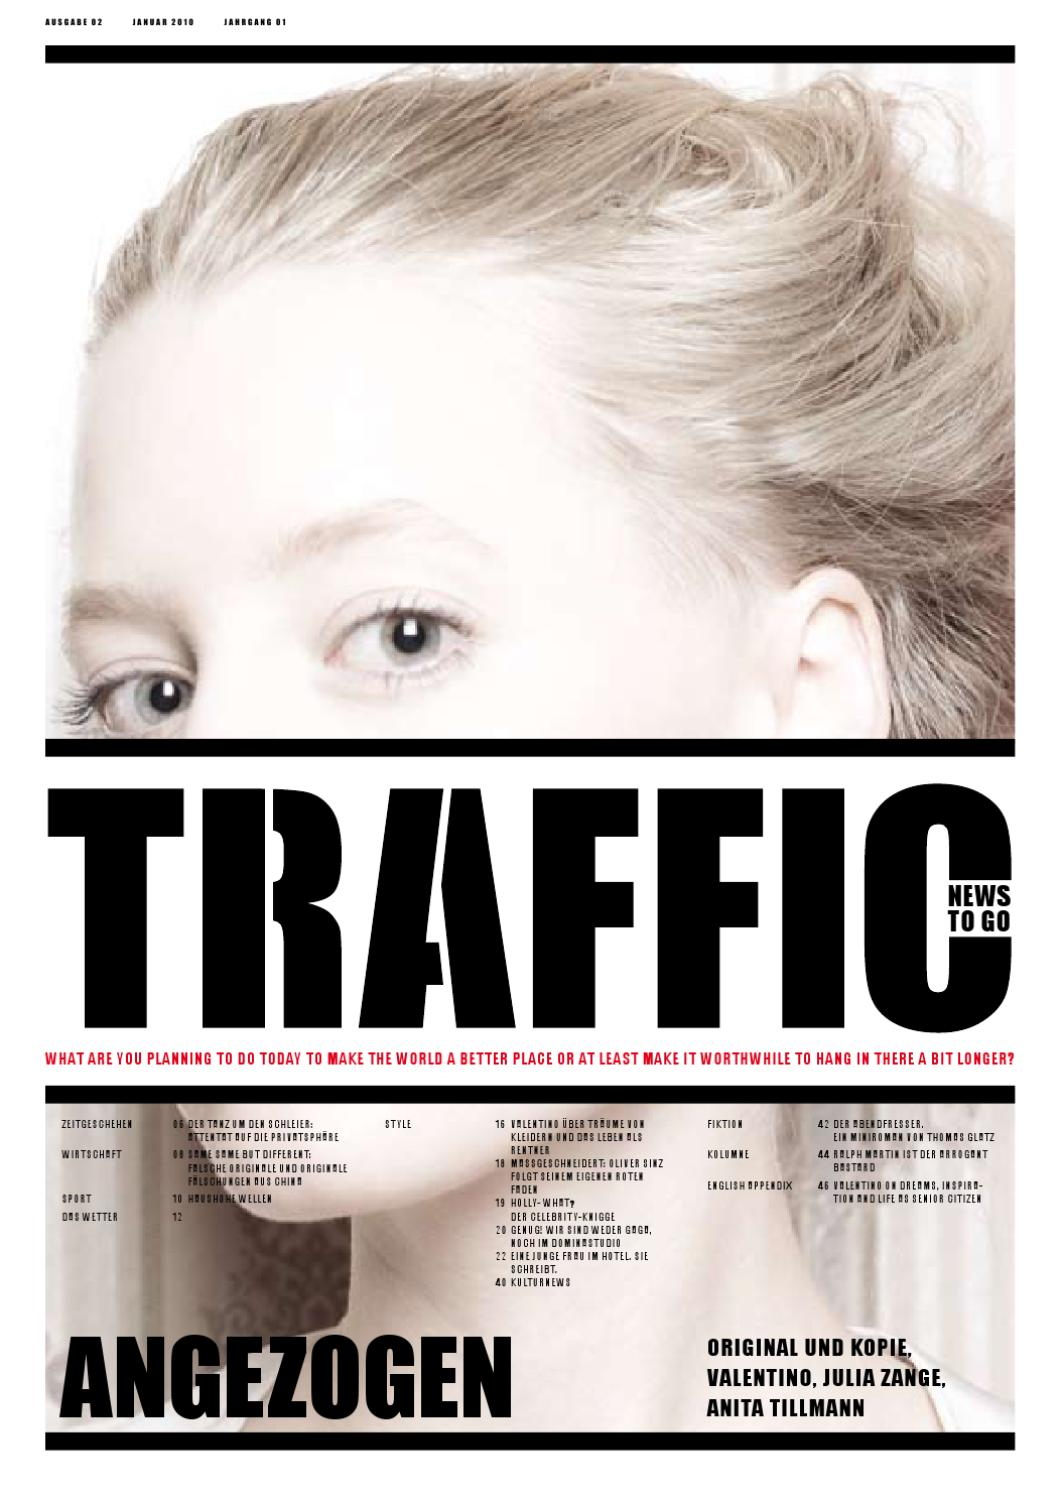 TRAFFIC News to go #2 by TRAFFIC News to go issuu